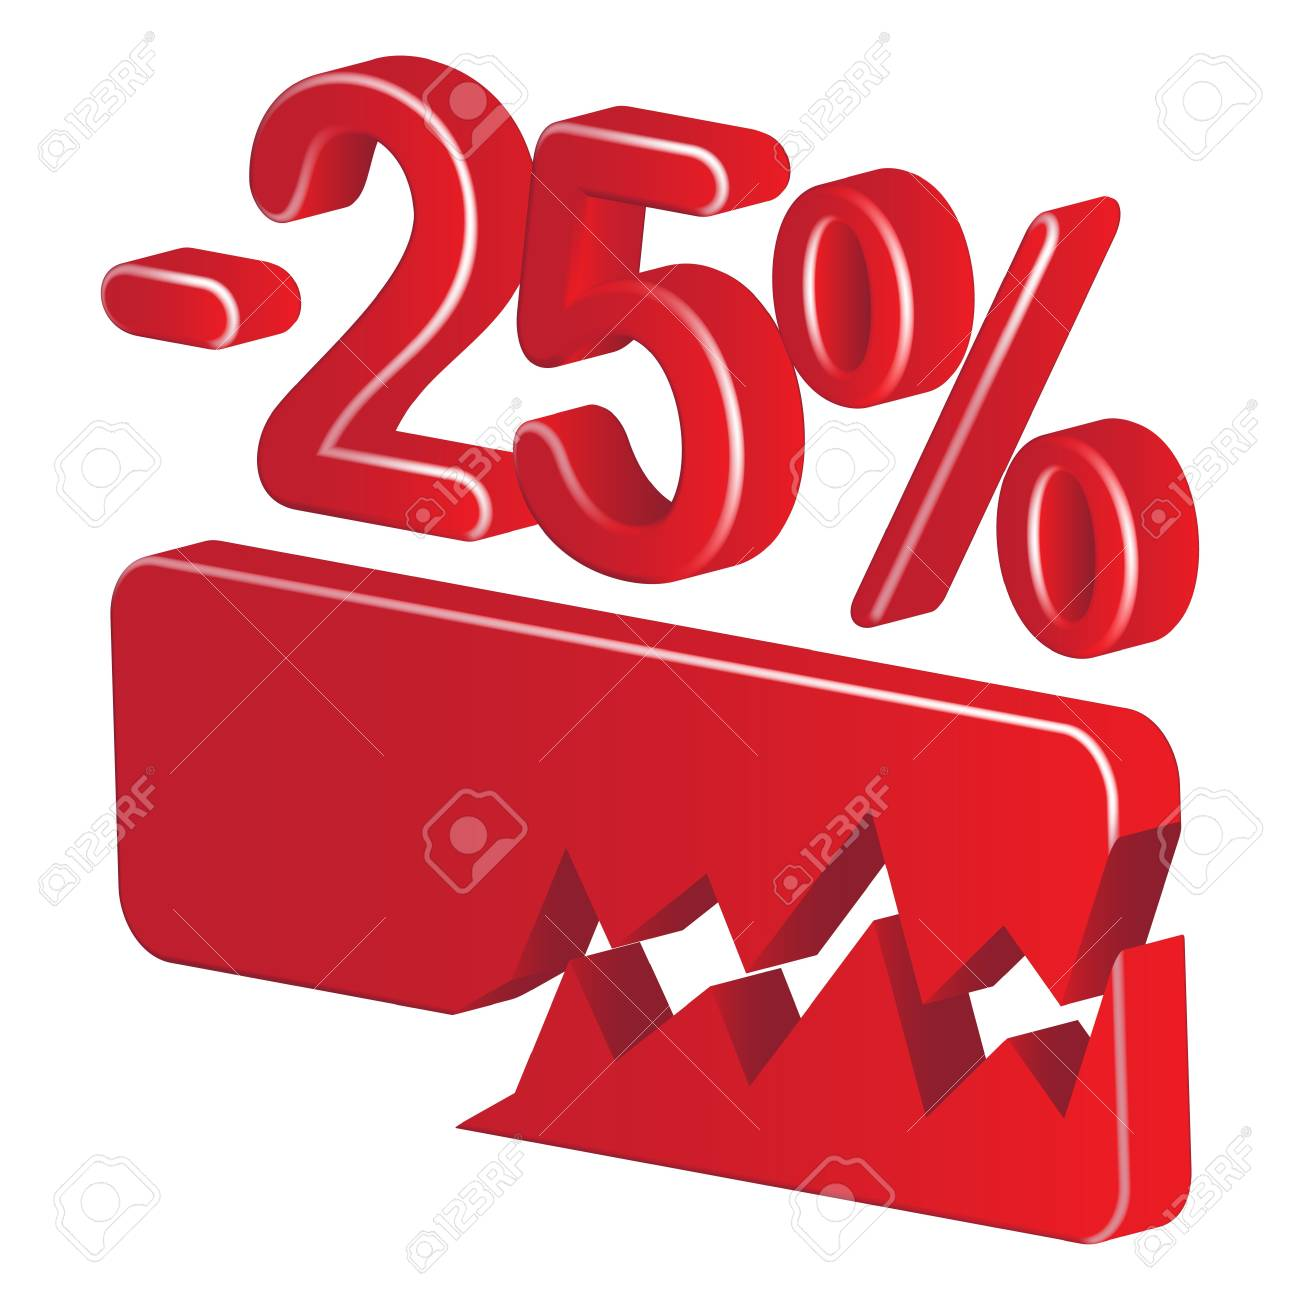 Minus twenty five per cent (red) on a white background Stock Vector - 20055478